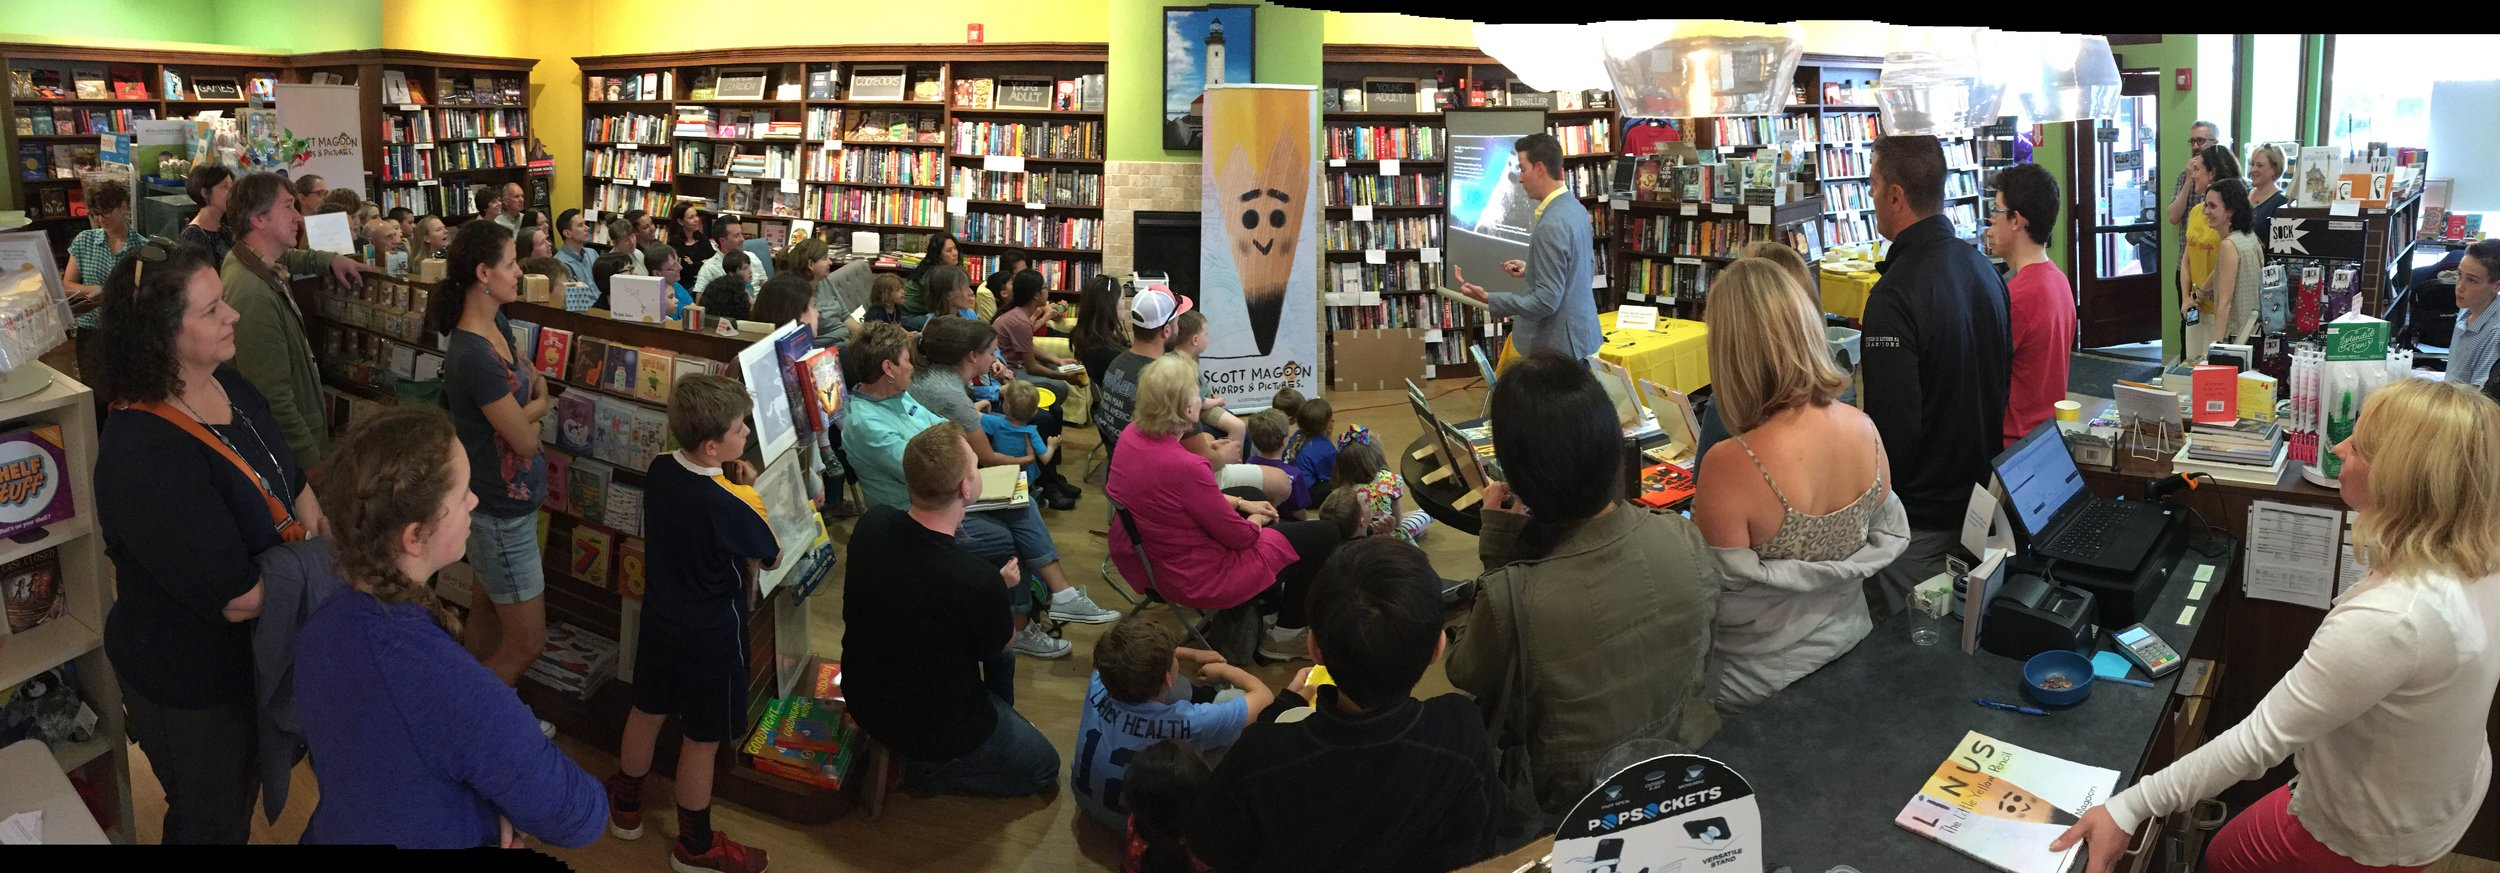 LINUS: launched! ✏️🎉We sent Linus off in style last night at my local indie  Whitelam Books  in an event for the books.📚 There were lots of doings: a free drawing to win signed art prints, bookmark/action figure freebies, refreshments including a Linus cake, (thanks to Christy ❤️) and a spirit of community, friendship and family. I spoke a bit about the making of the book and signed copies too. Store sold out! Thanks to everyone who came out to celebrate with us; I am grateful and will remember it fondly. This was a special night; attendees got copies before anyone else. Linus is available everywhere on Tuesday from Disney Hyperion Books. Miss this one? There are many more stops to come this summer on the Headliner Tour. More  here .